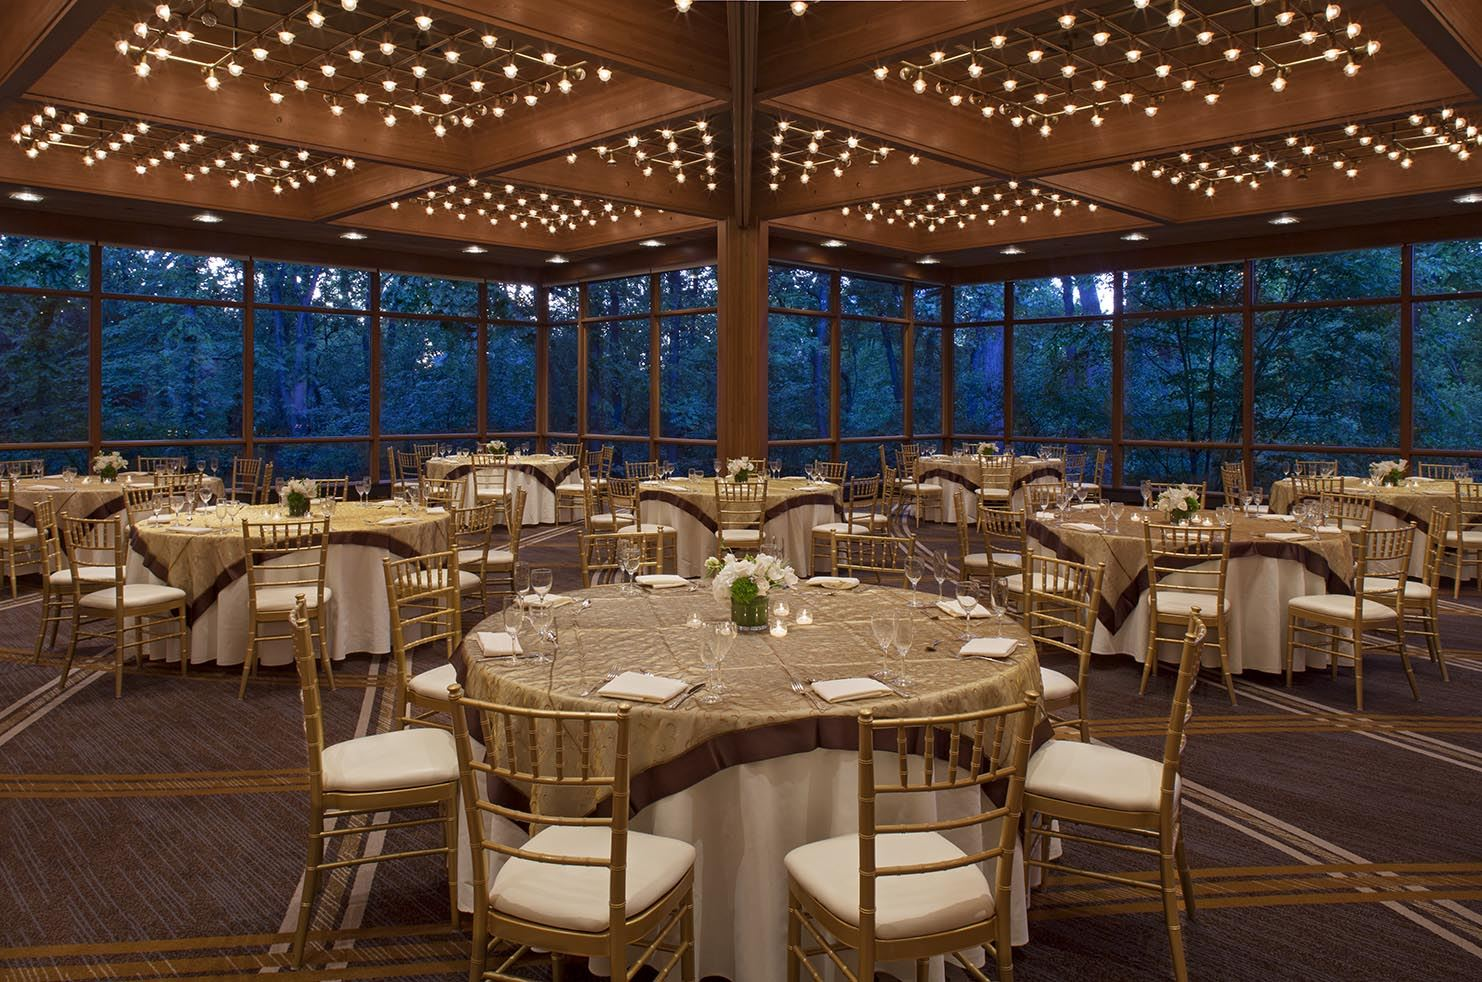 Hyatt Lodge Grad Oaks Pavillion